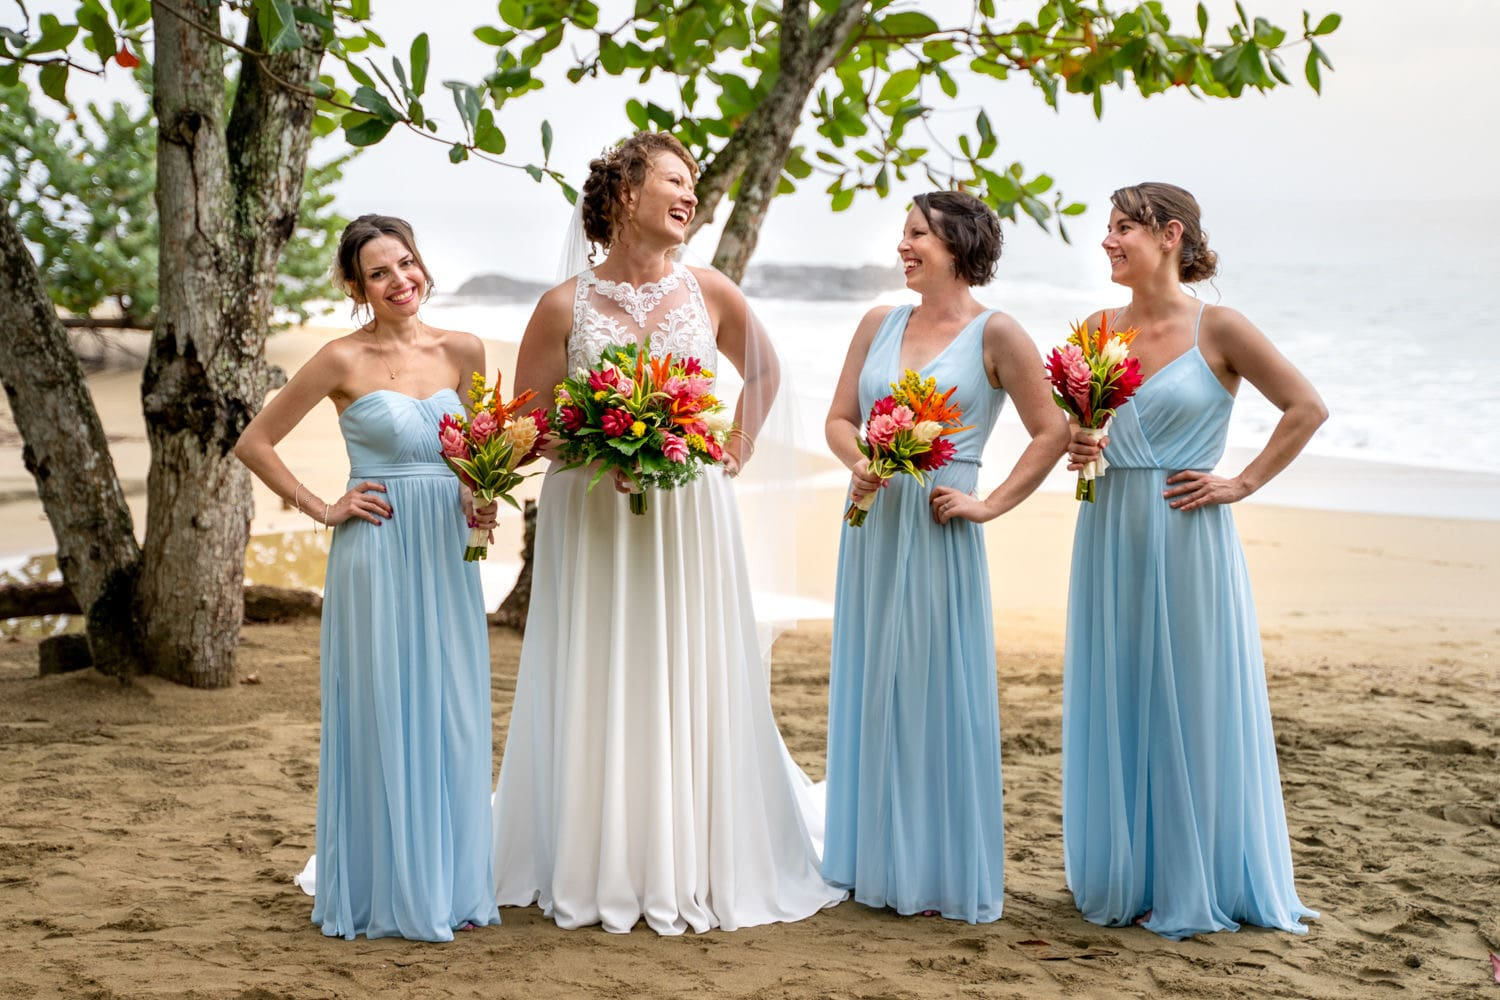 Intimate Tobago Weddings, Designed by Asha Mars for Luxury Destination Blog Adriana Weddings